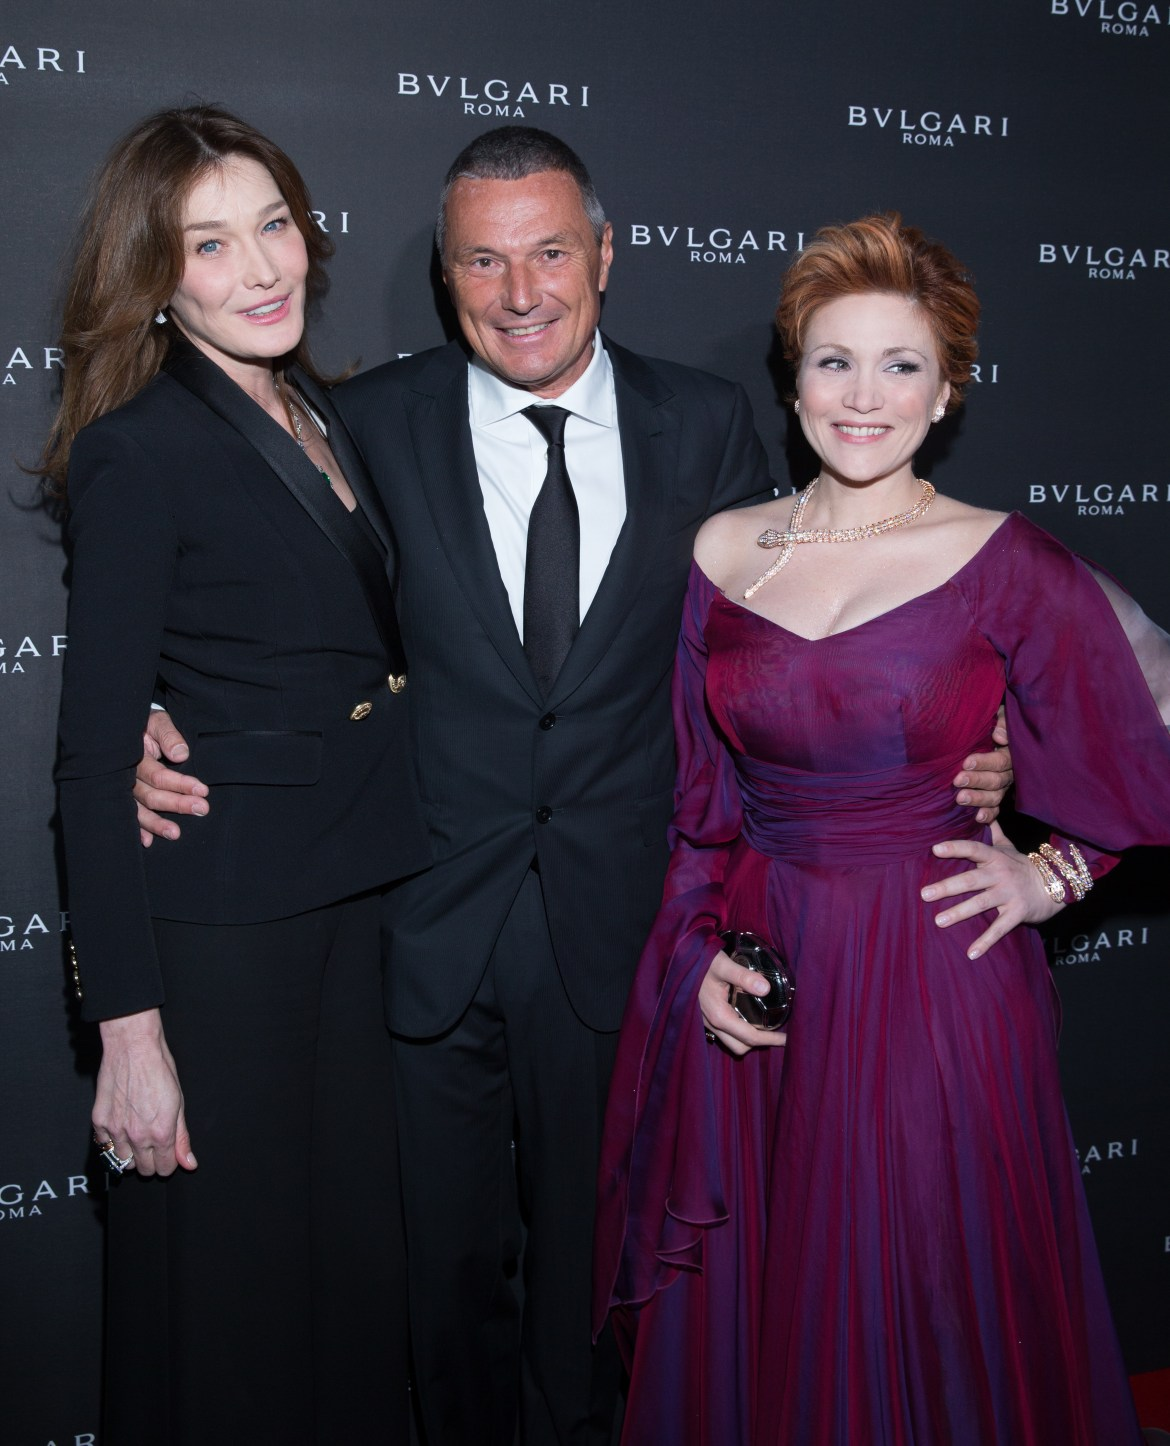 Carla BRUNI-SARKOZY. Jean-Christophe BABIN. Carmen GIANNATTASIO. Bulgari Opening New Bond Street. London. UK. 14/3/2016 © david atlan